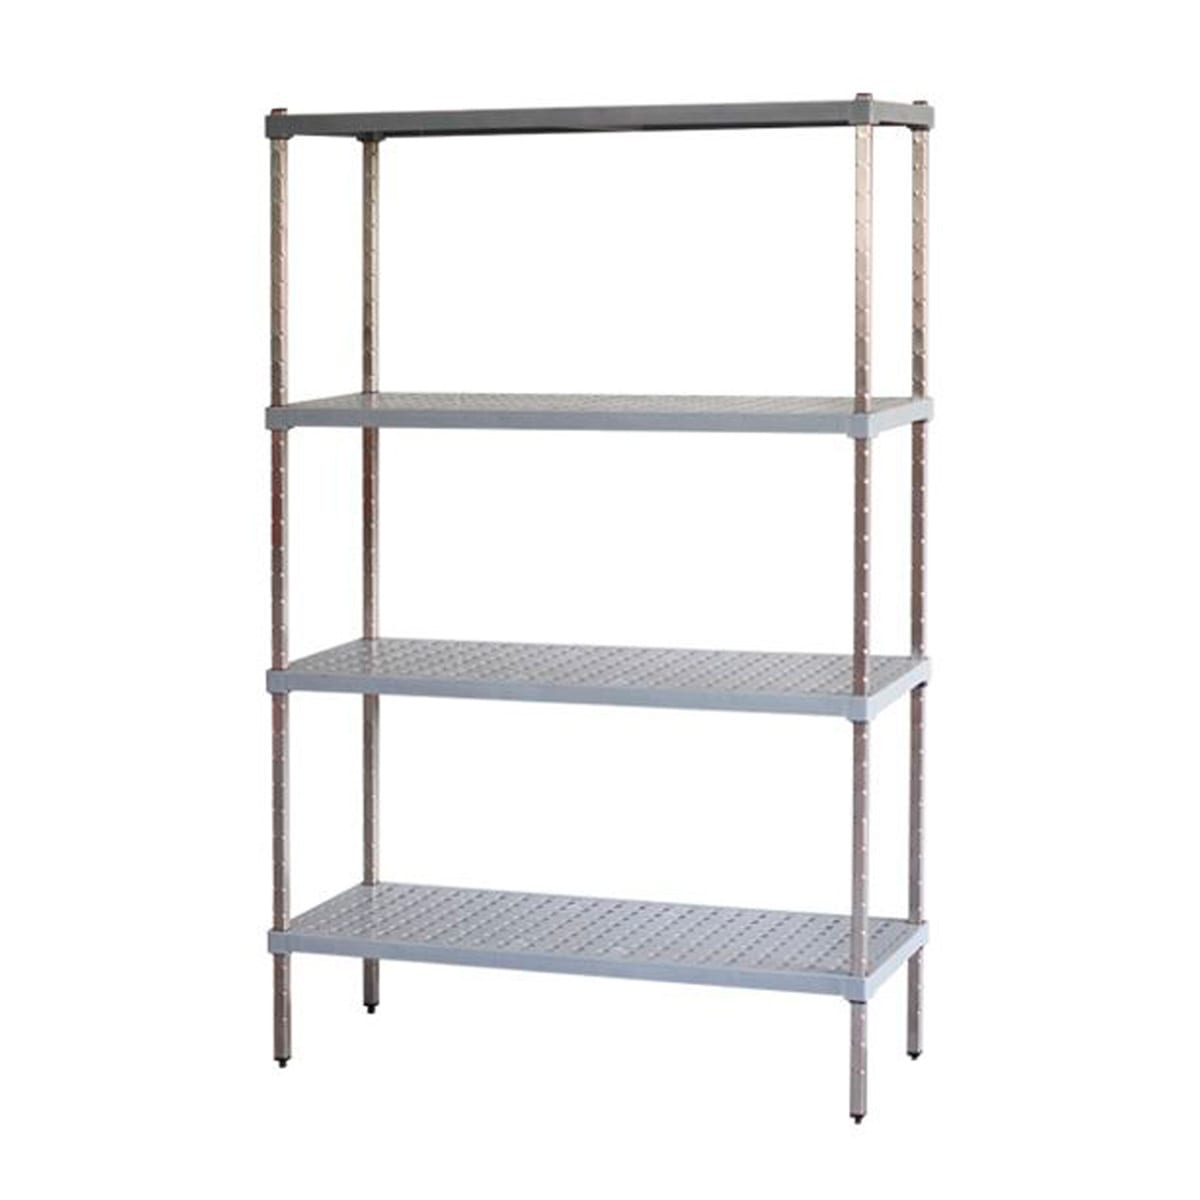 coolroom storage system with shelves